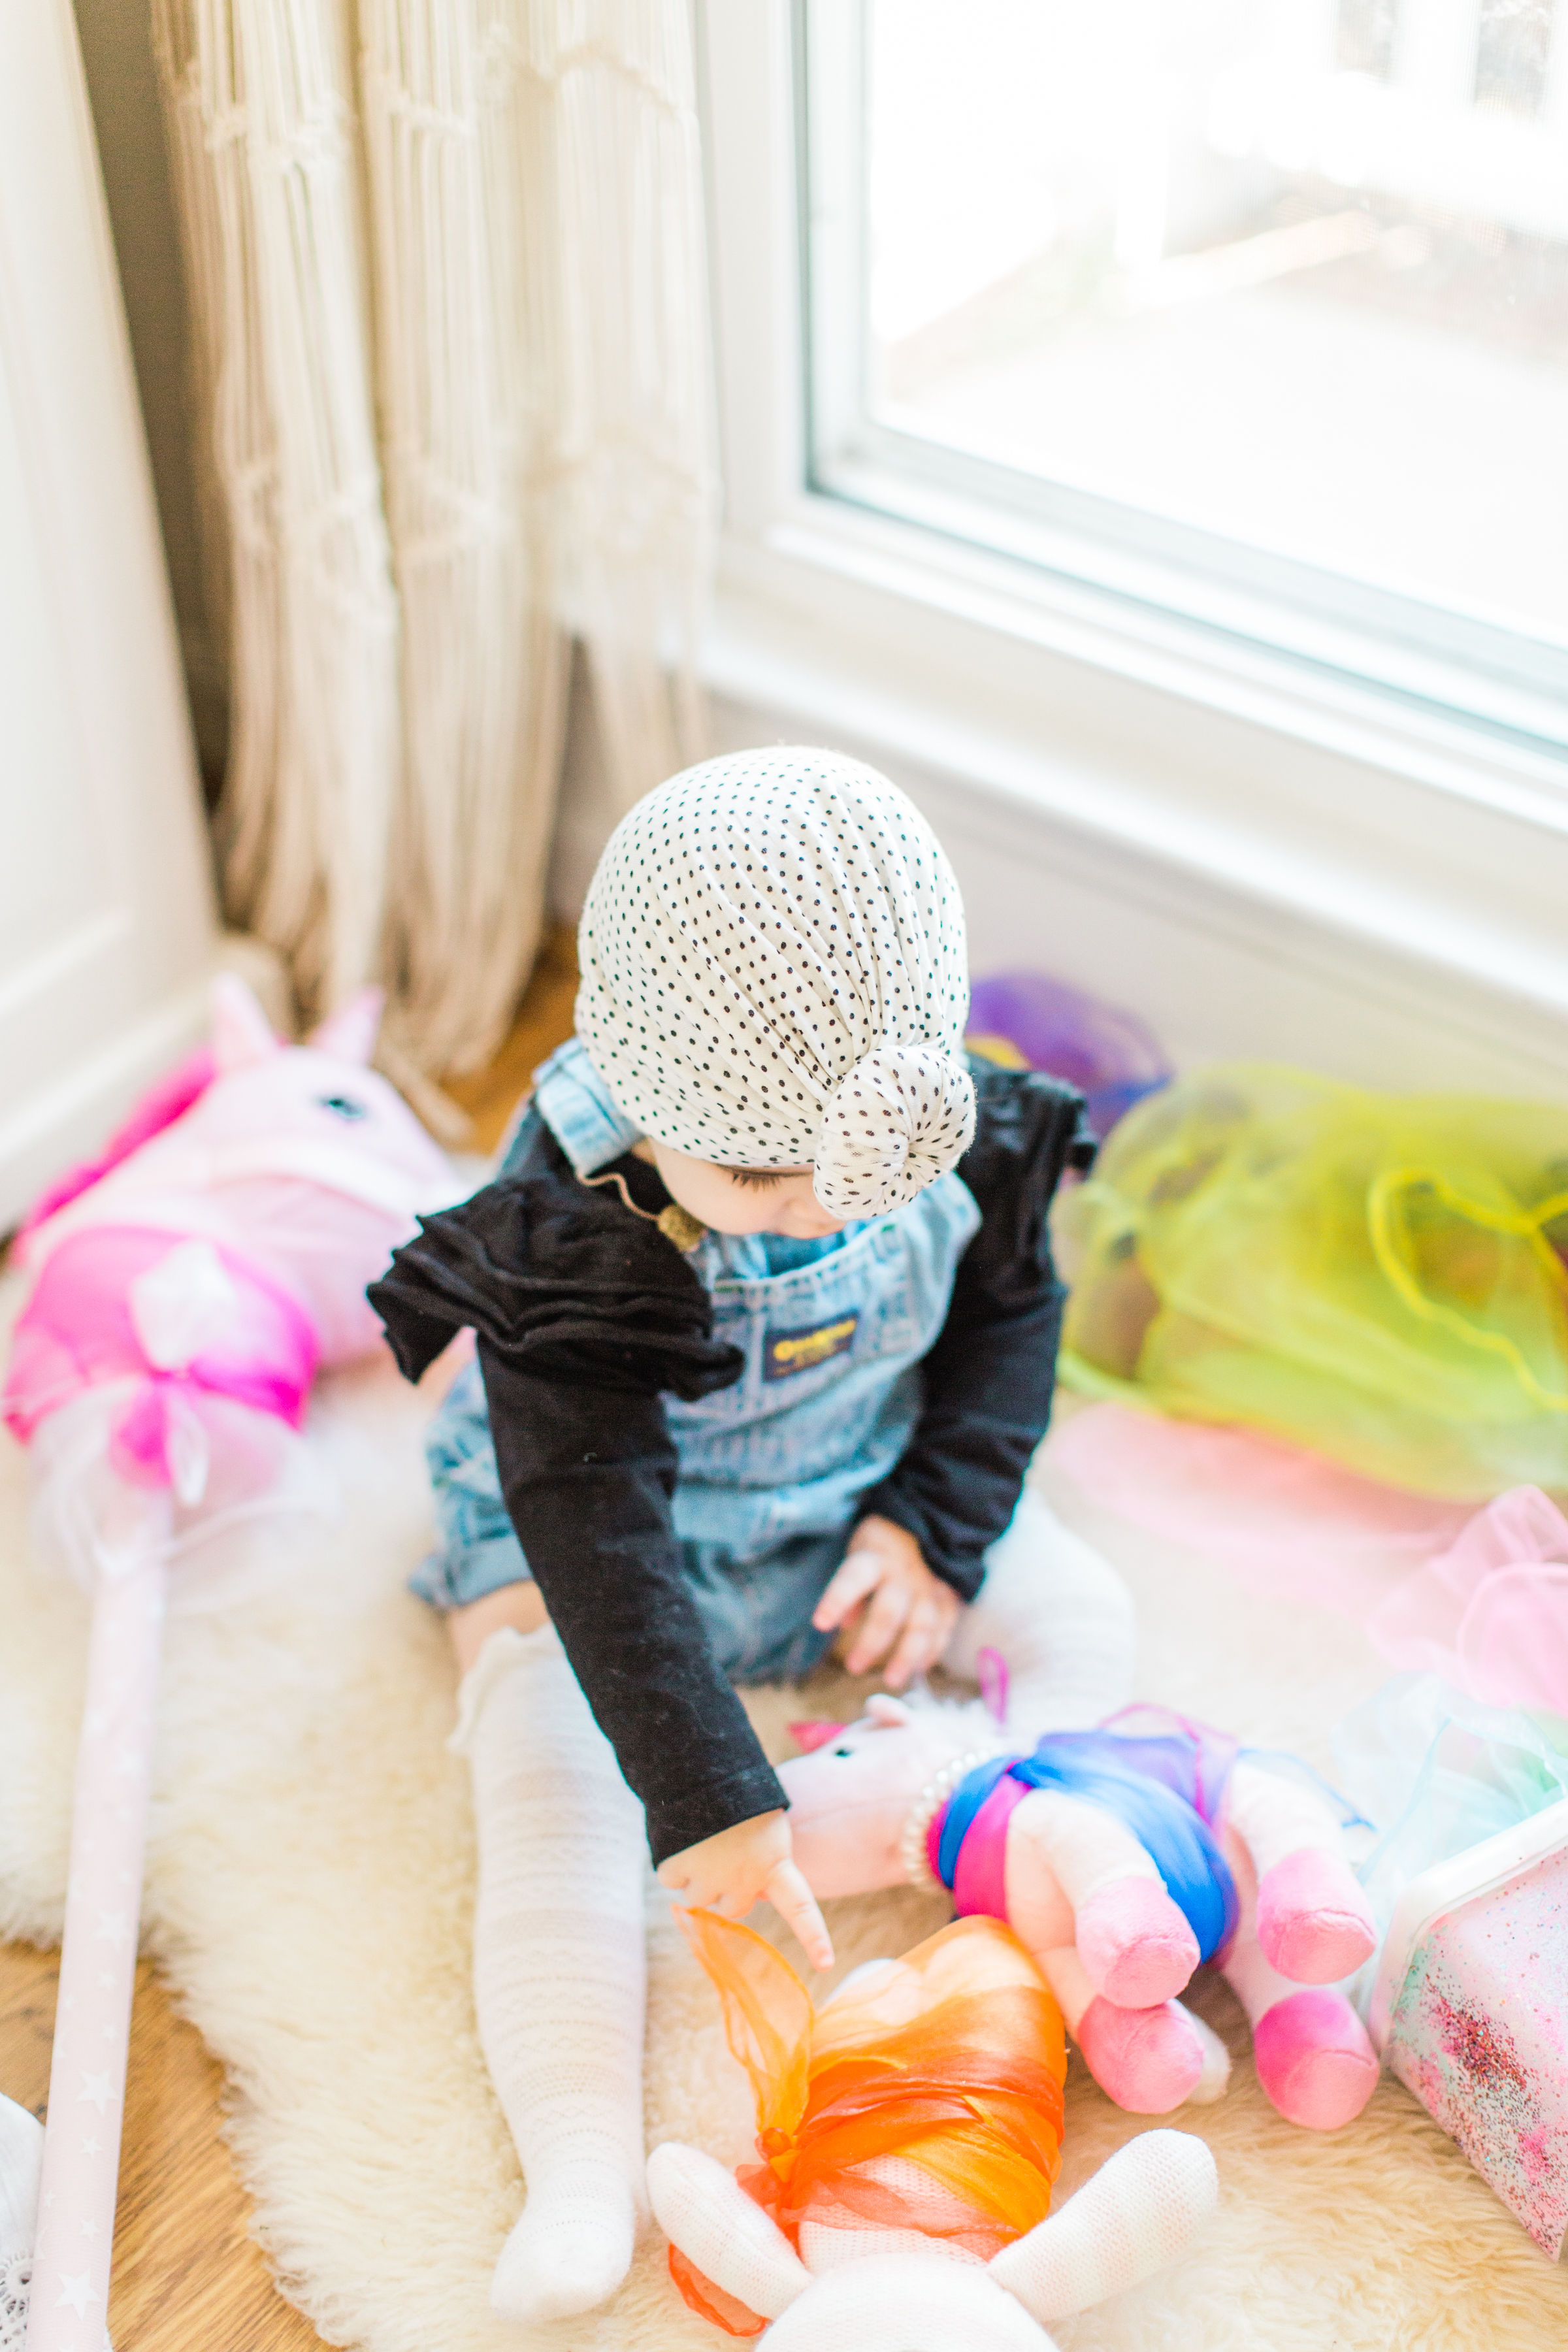 Looking for a fun activity to do with your baby? Make an easy, magic sensory toy using an empty wipes container and inexpensive colorful scarves. | Click through for the DIY. | glitterinc.com |